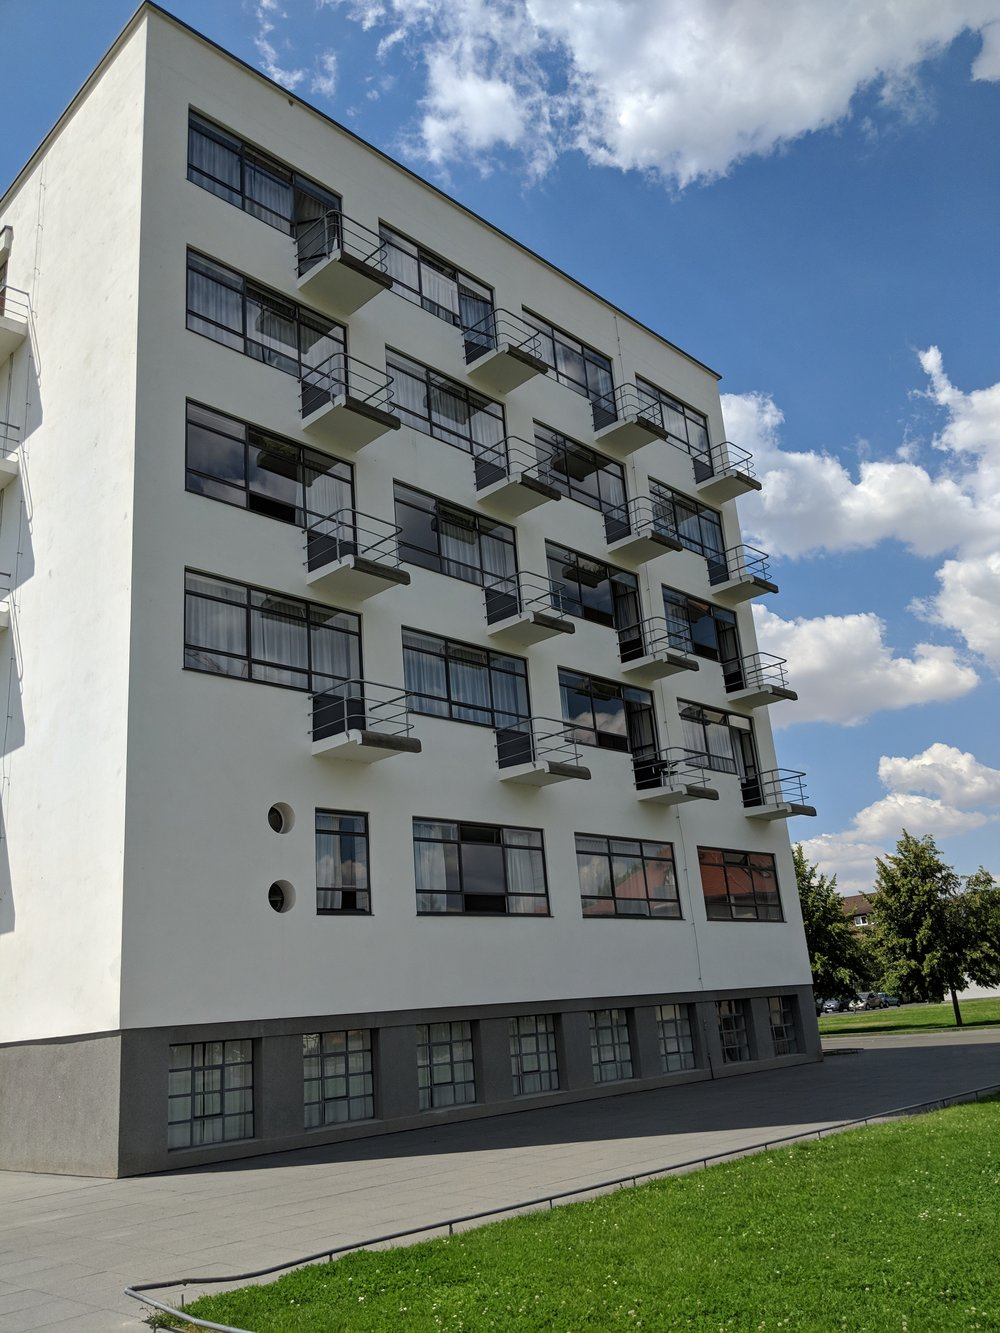 Student's living building